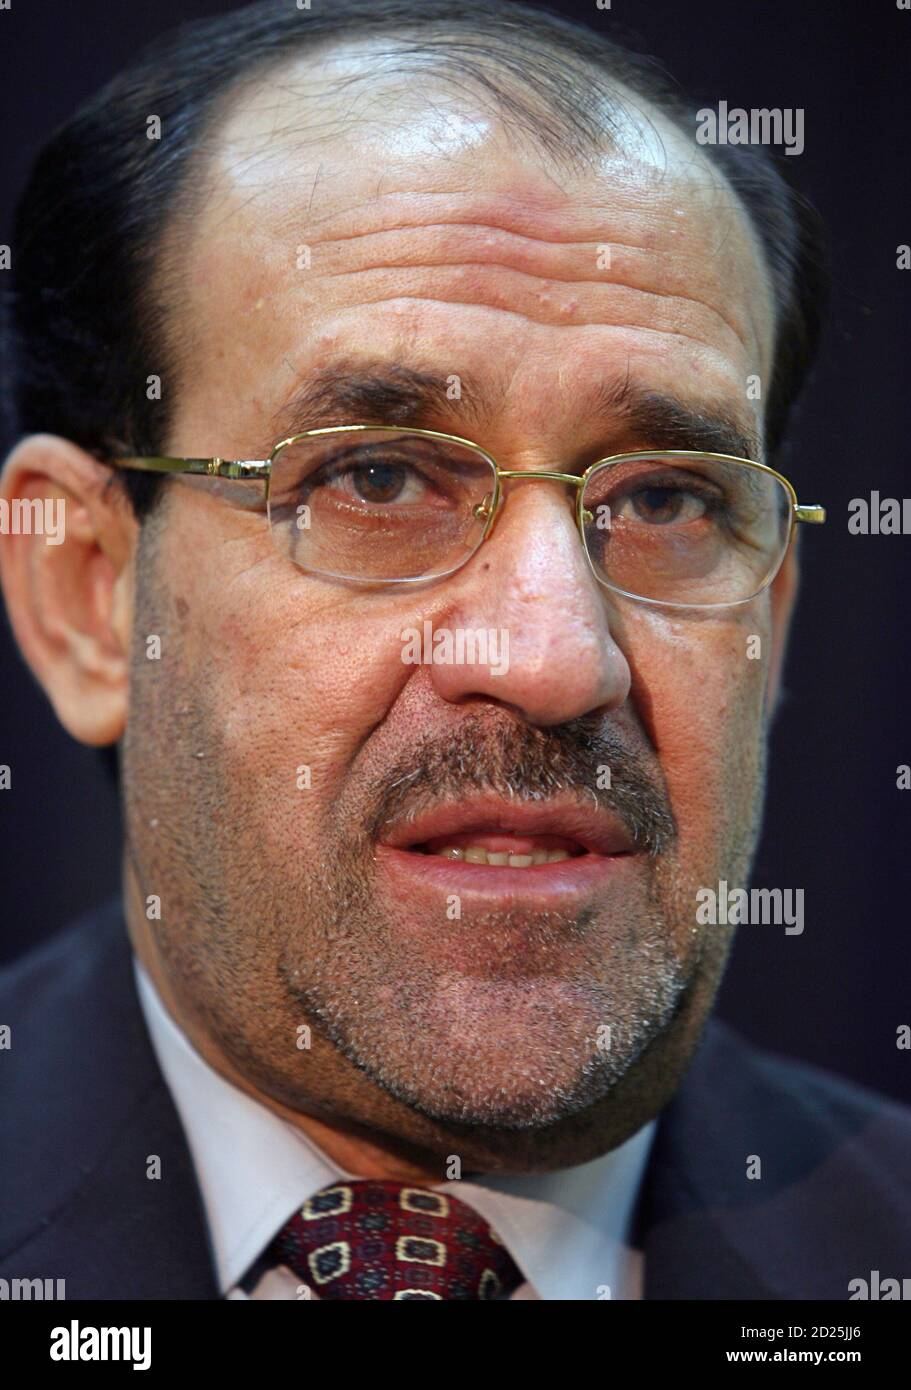 https www alamy com iraqi prime minister nuri al maliki speaks with a reuters correspondent during an interview in baghdad may 30 2006 image379981790 html